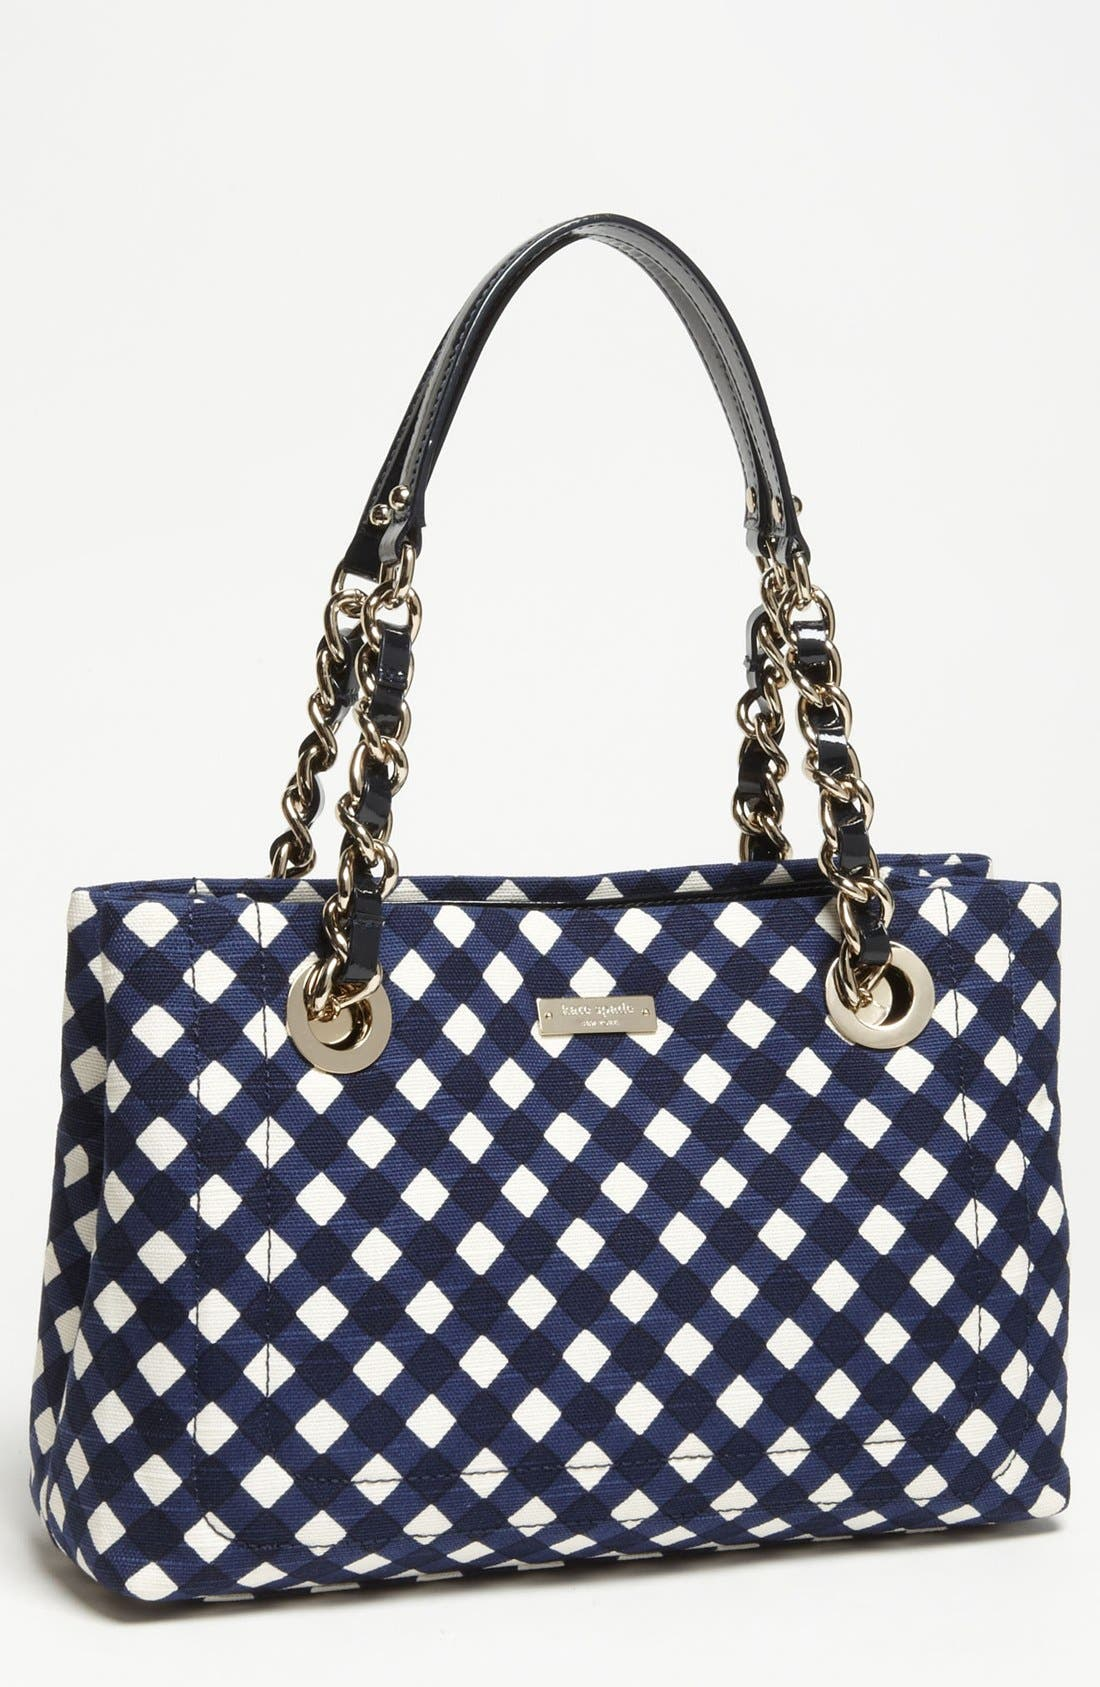 Alternate Image 1 Selected - kate spade new york 'bay terrace - small helena' tote